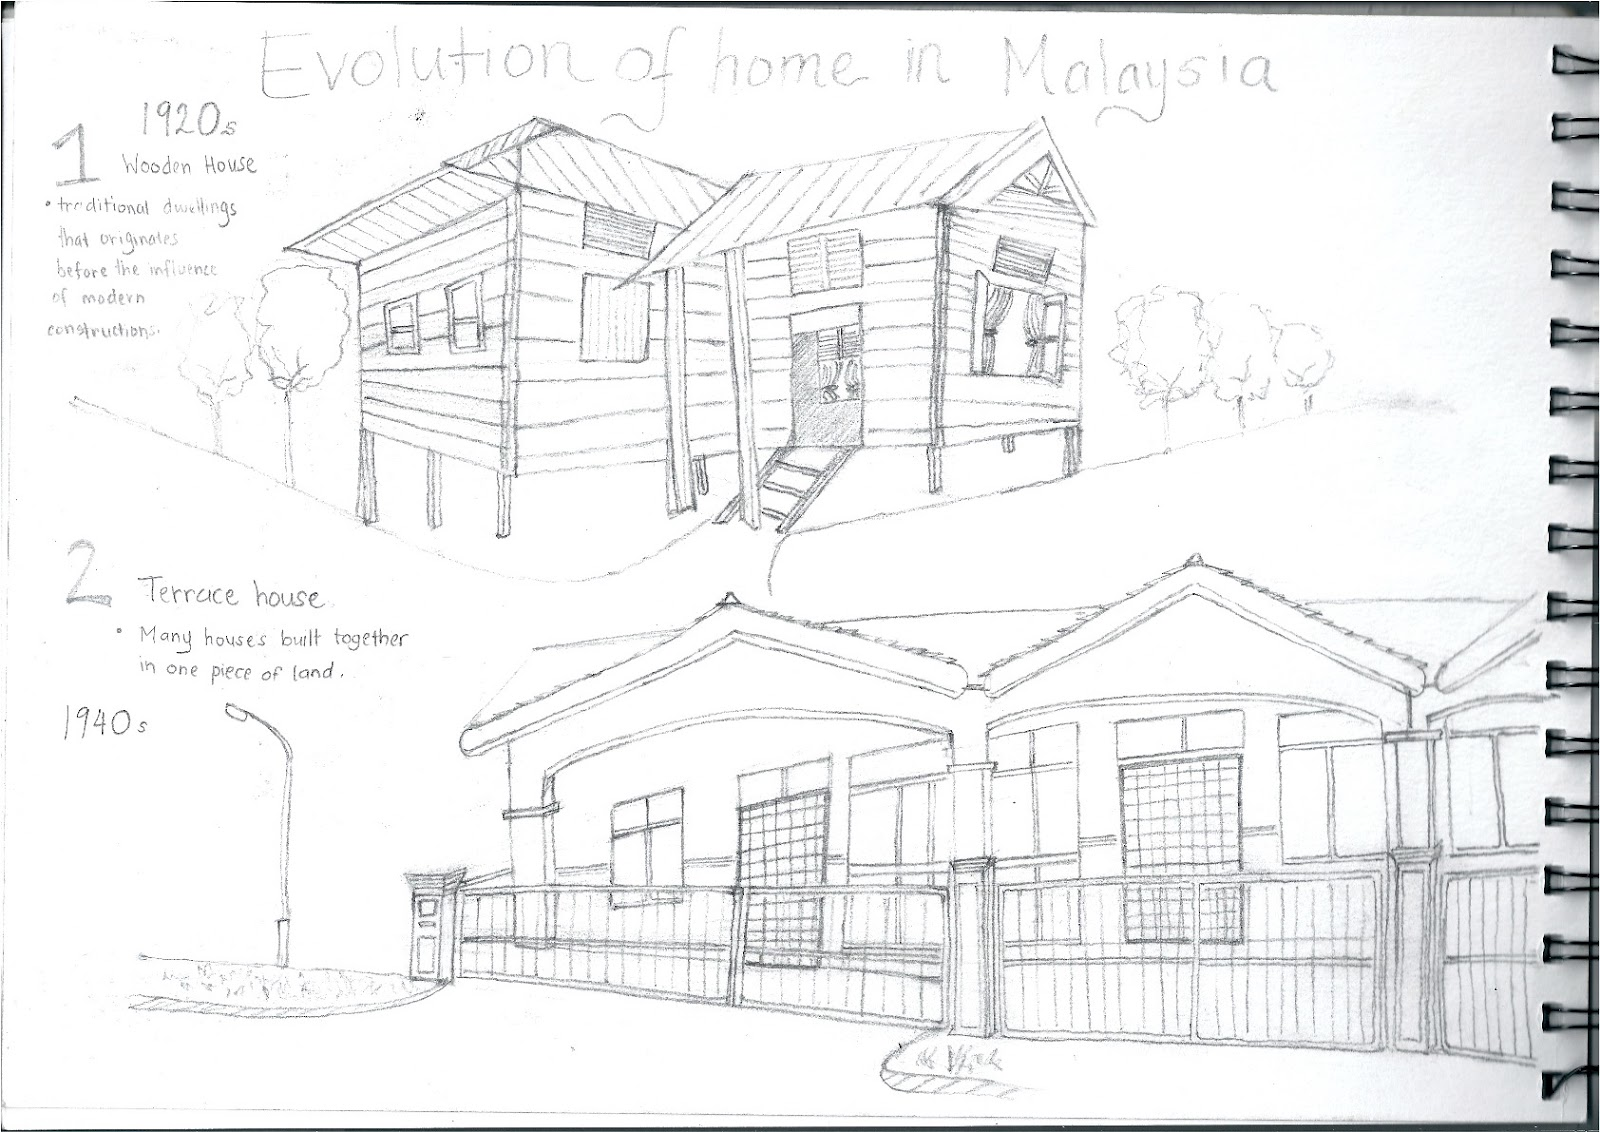 Pictorial Sketches: Evolution Of Home In Malaysia